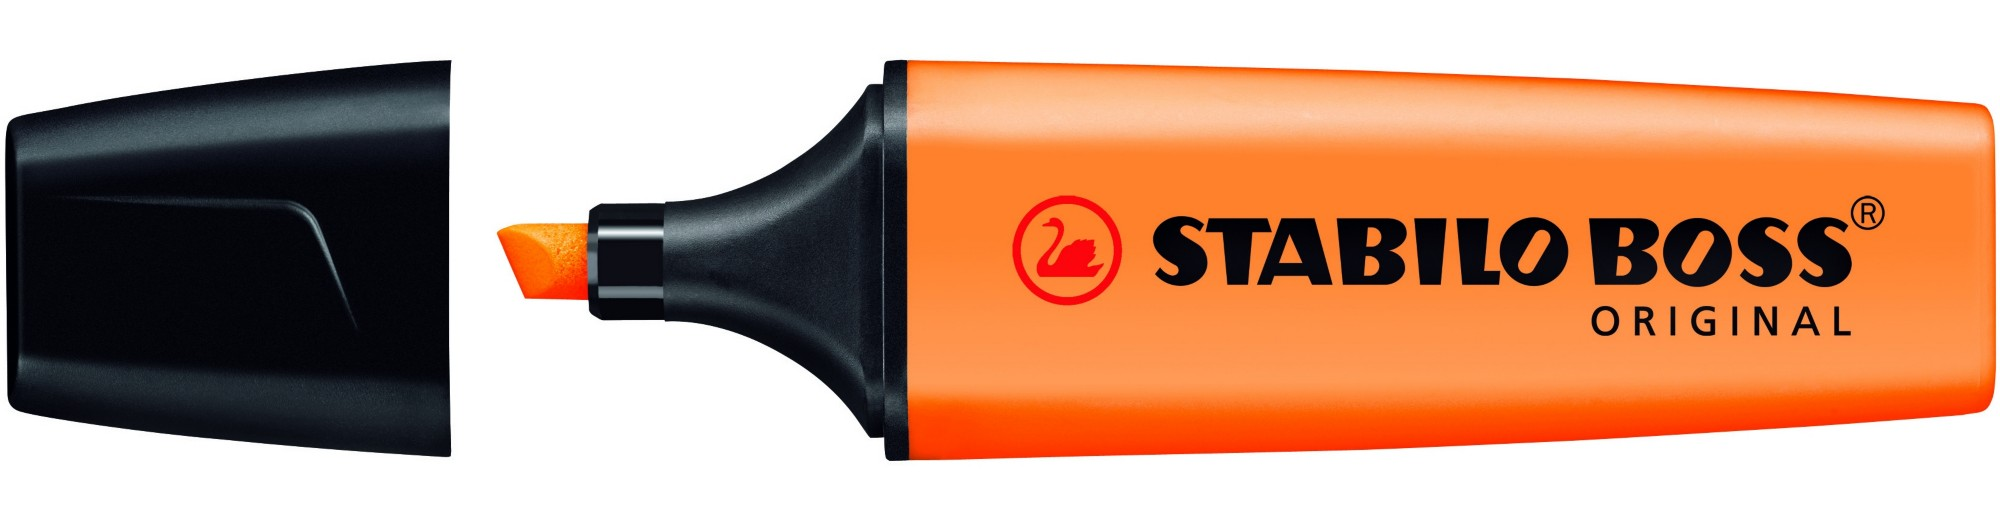 STABILO 70/54 BOSS ORIGINAL ORANGE 10PC(S) MARKER